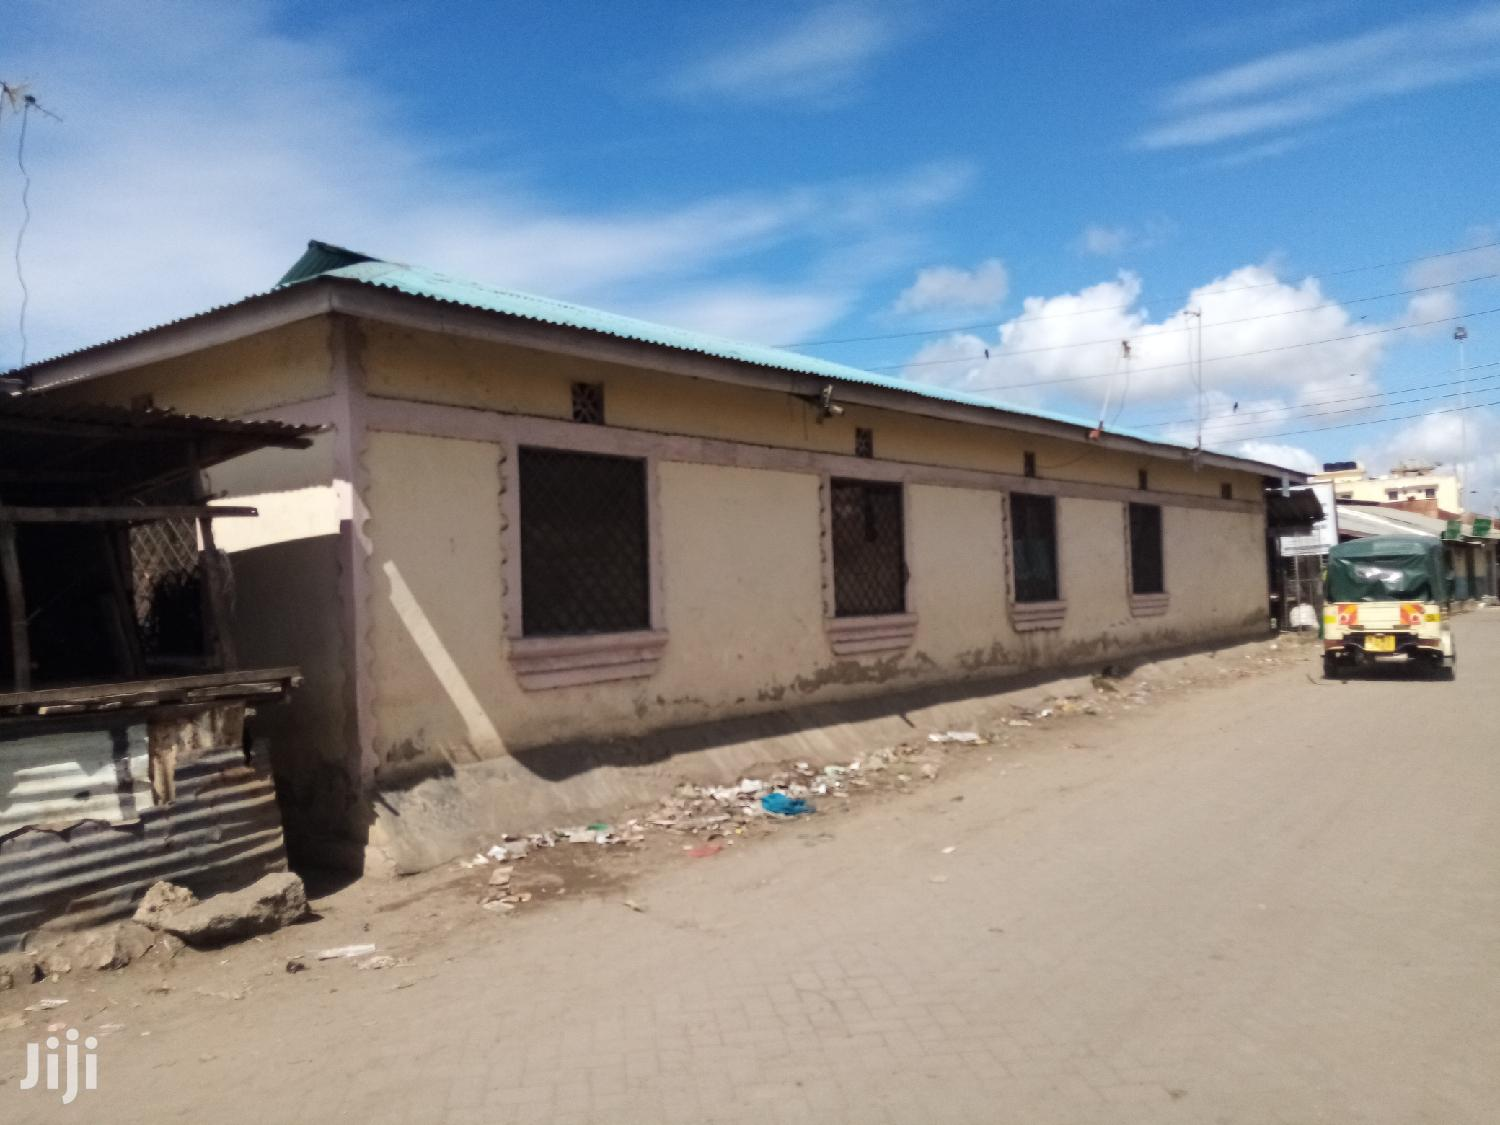 Kongowea Swahili House for Sale   Commercial Property For Sale for sale in Nyali, Mombasa, Kenya